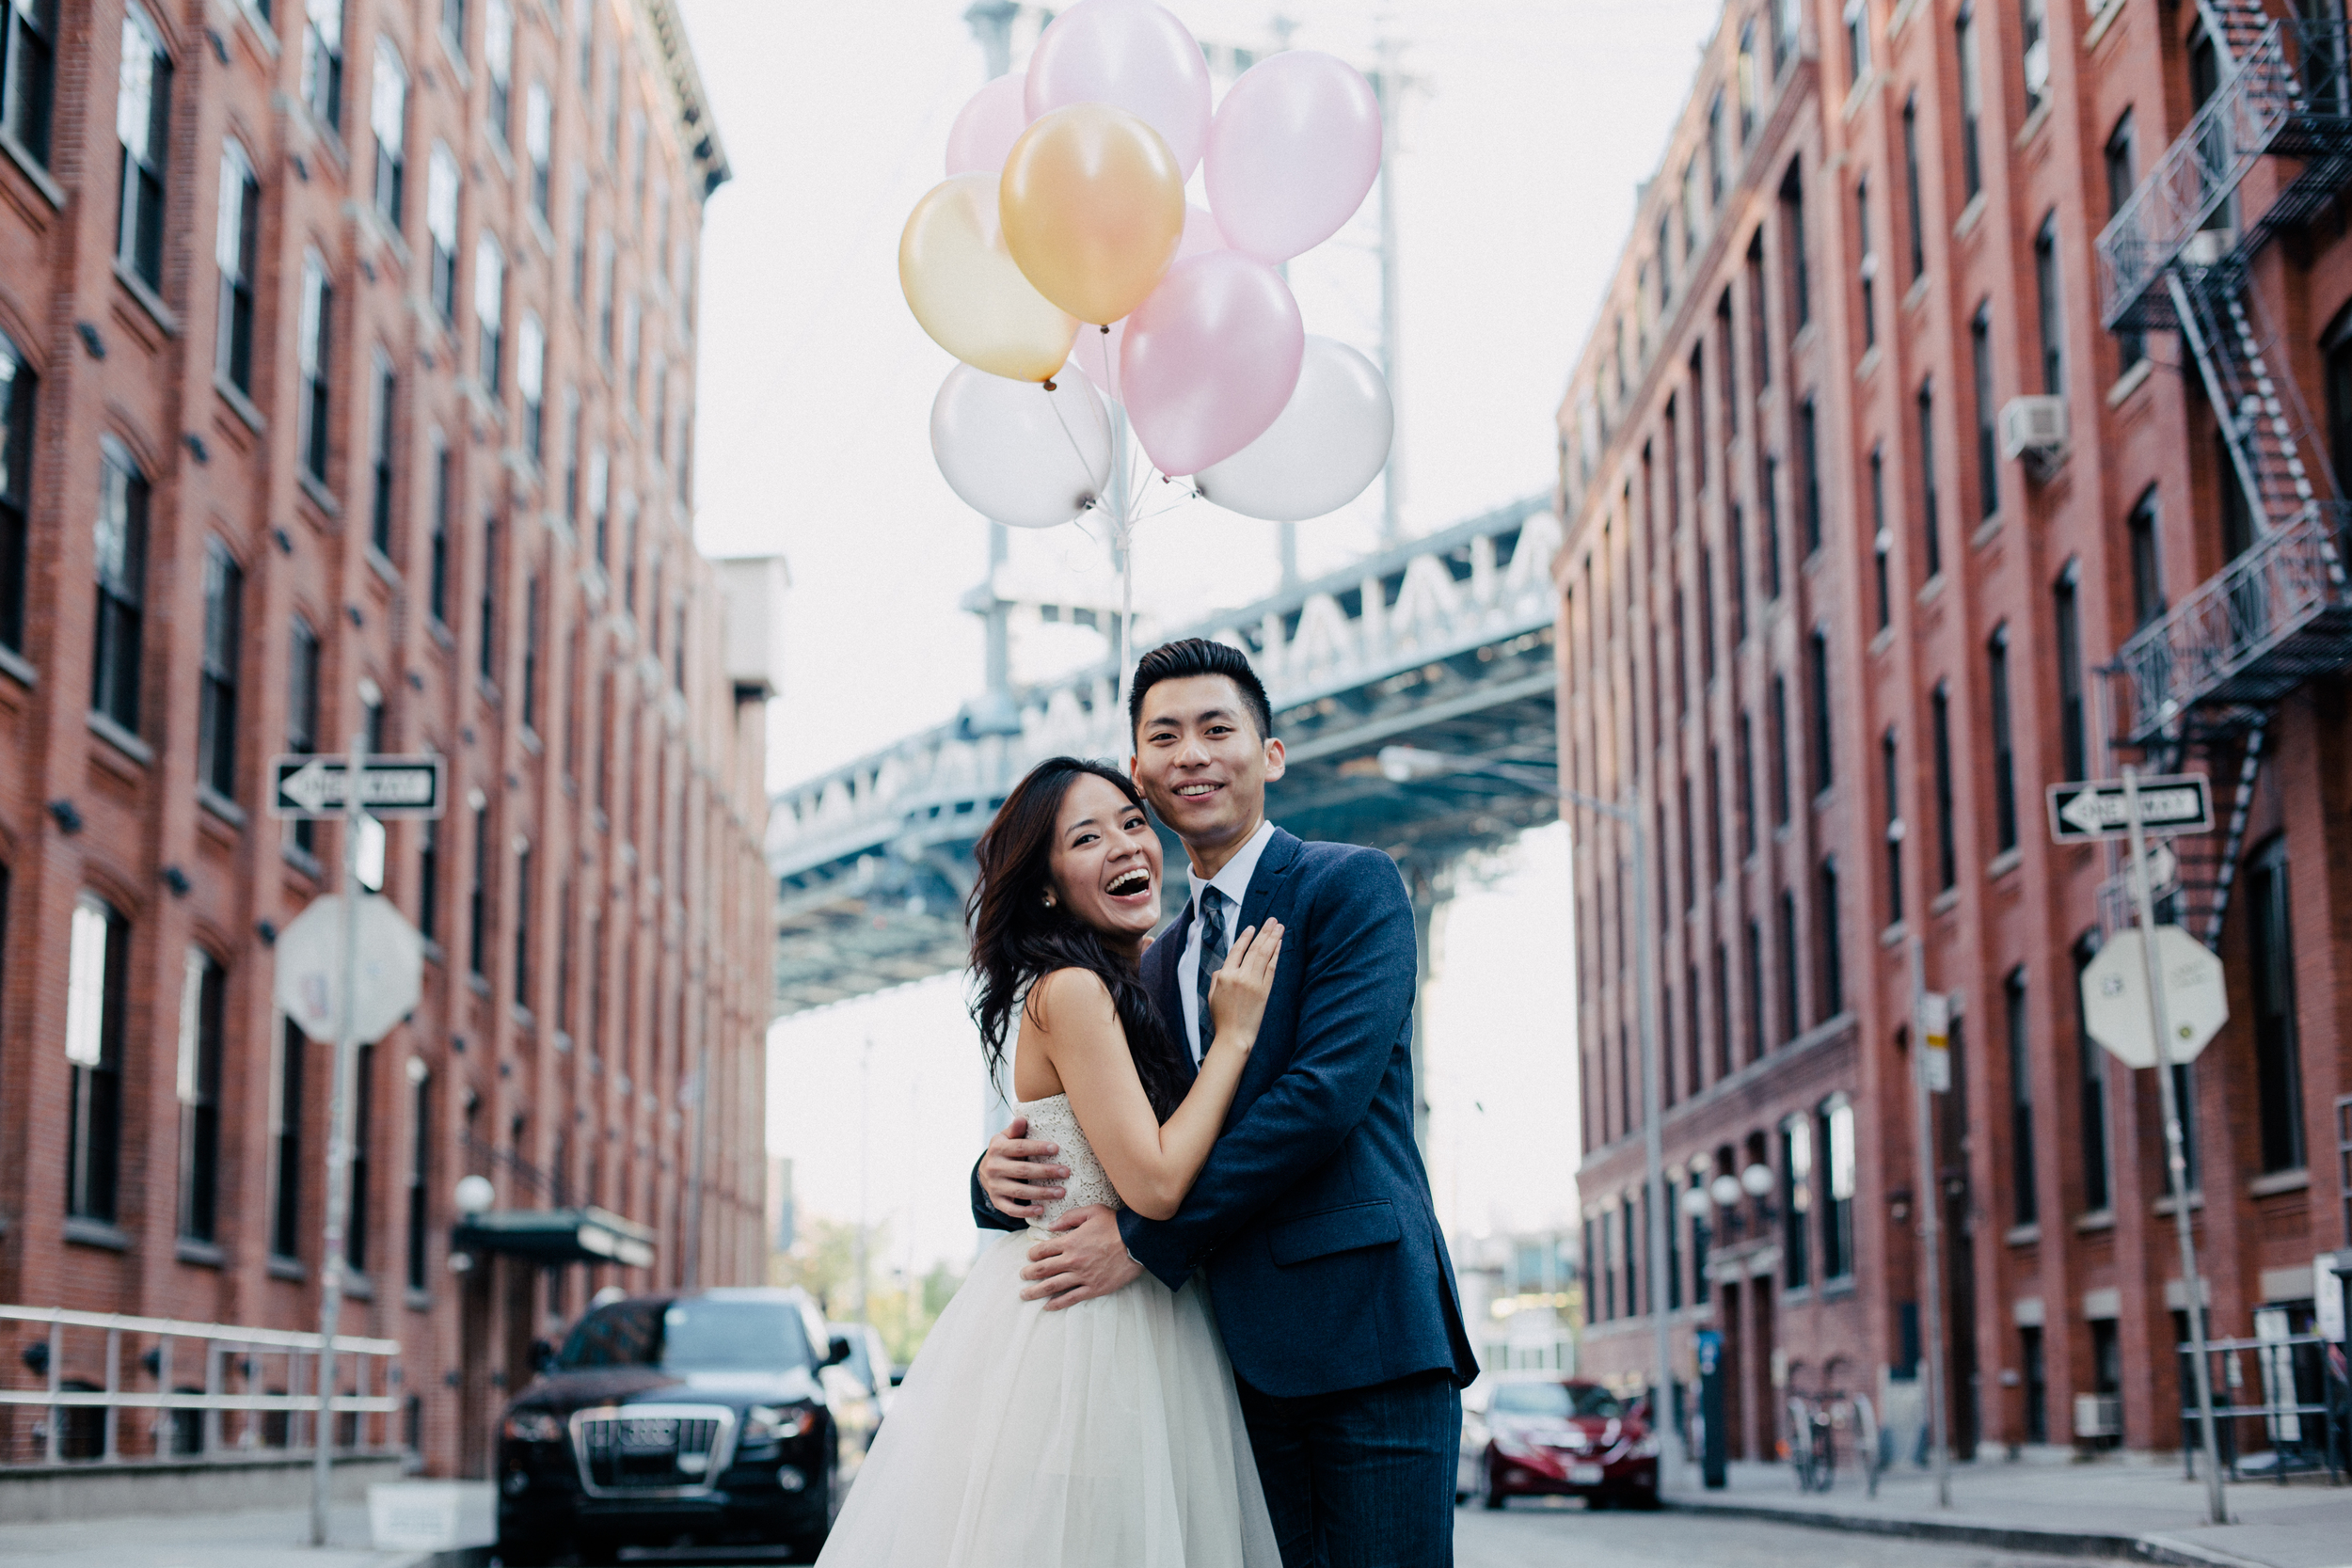 fun vibrant couple in Brooklyn nyc engaged